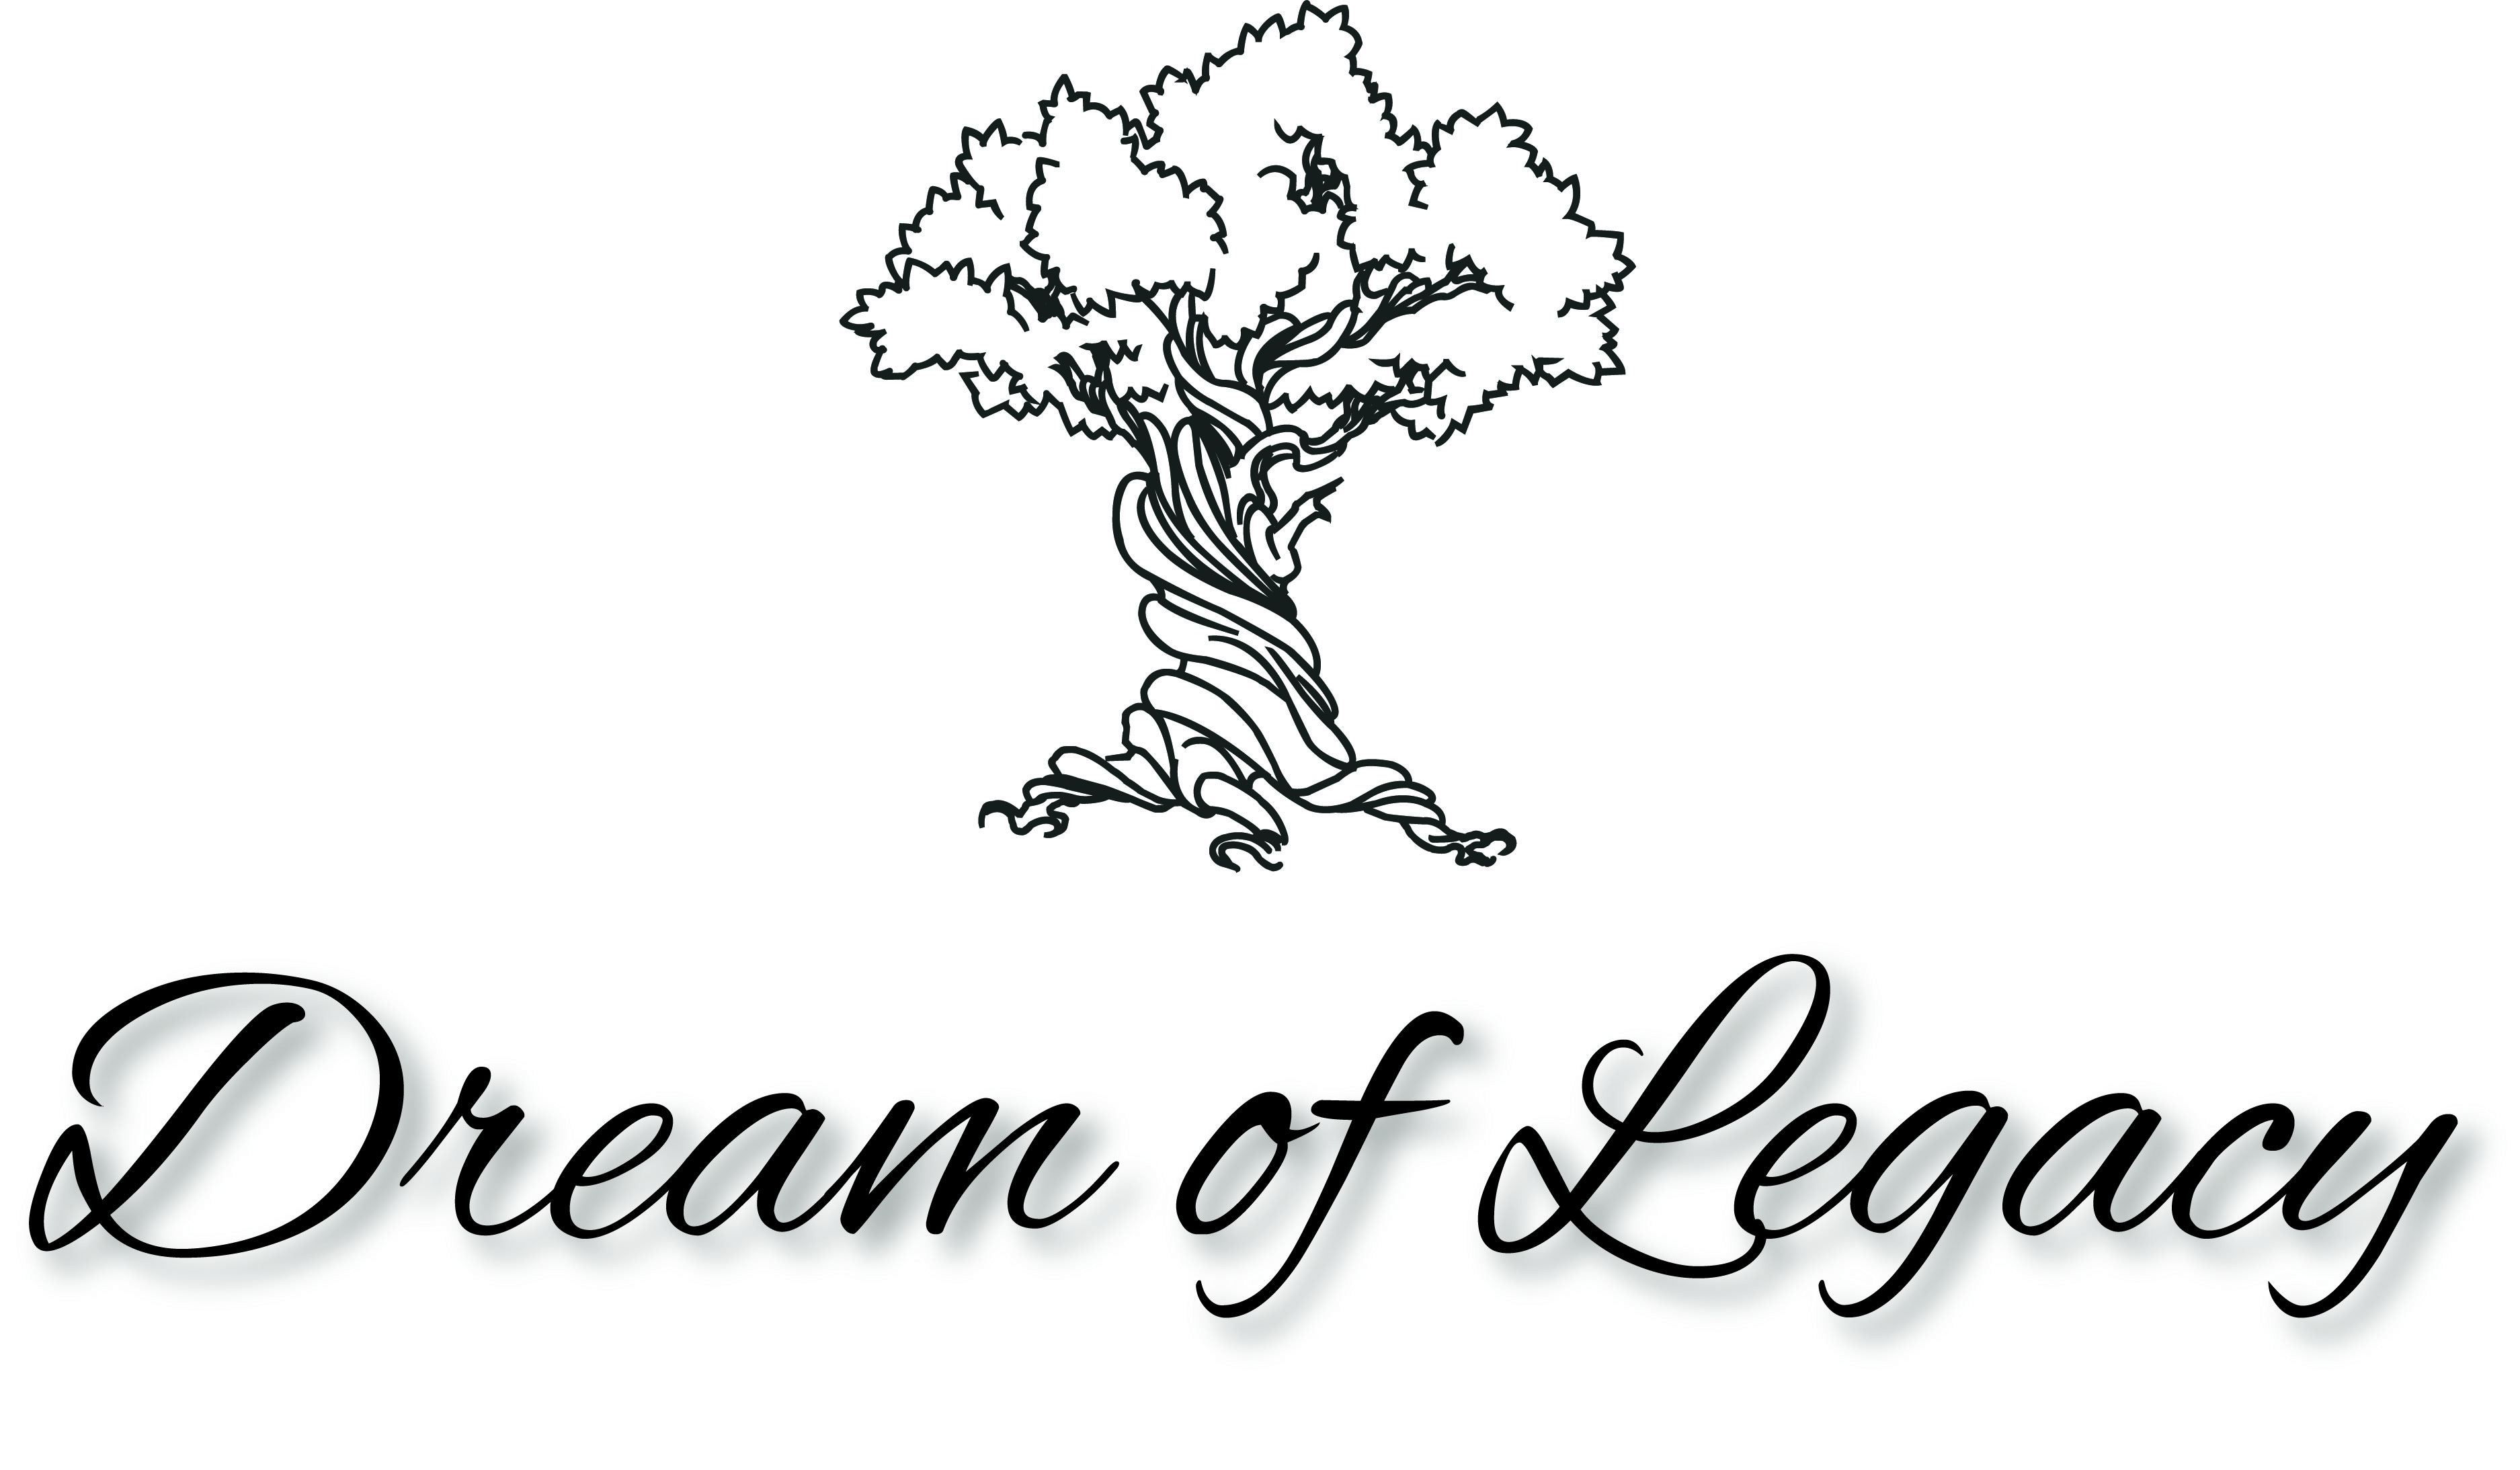 DREAM OF LEGACY